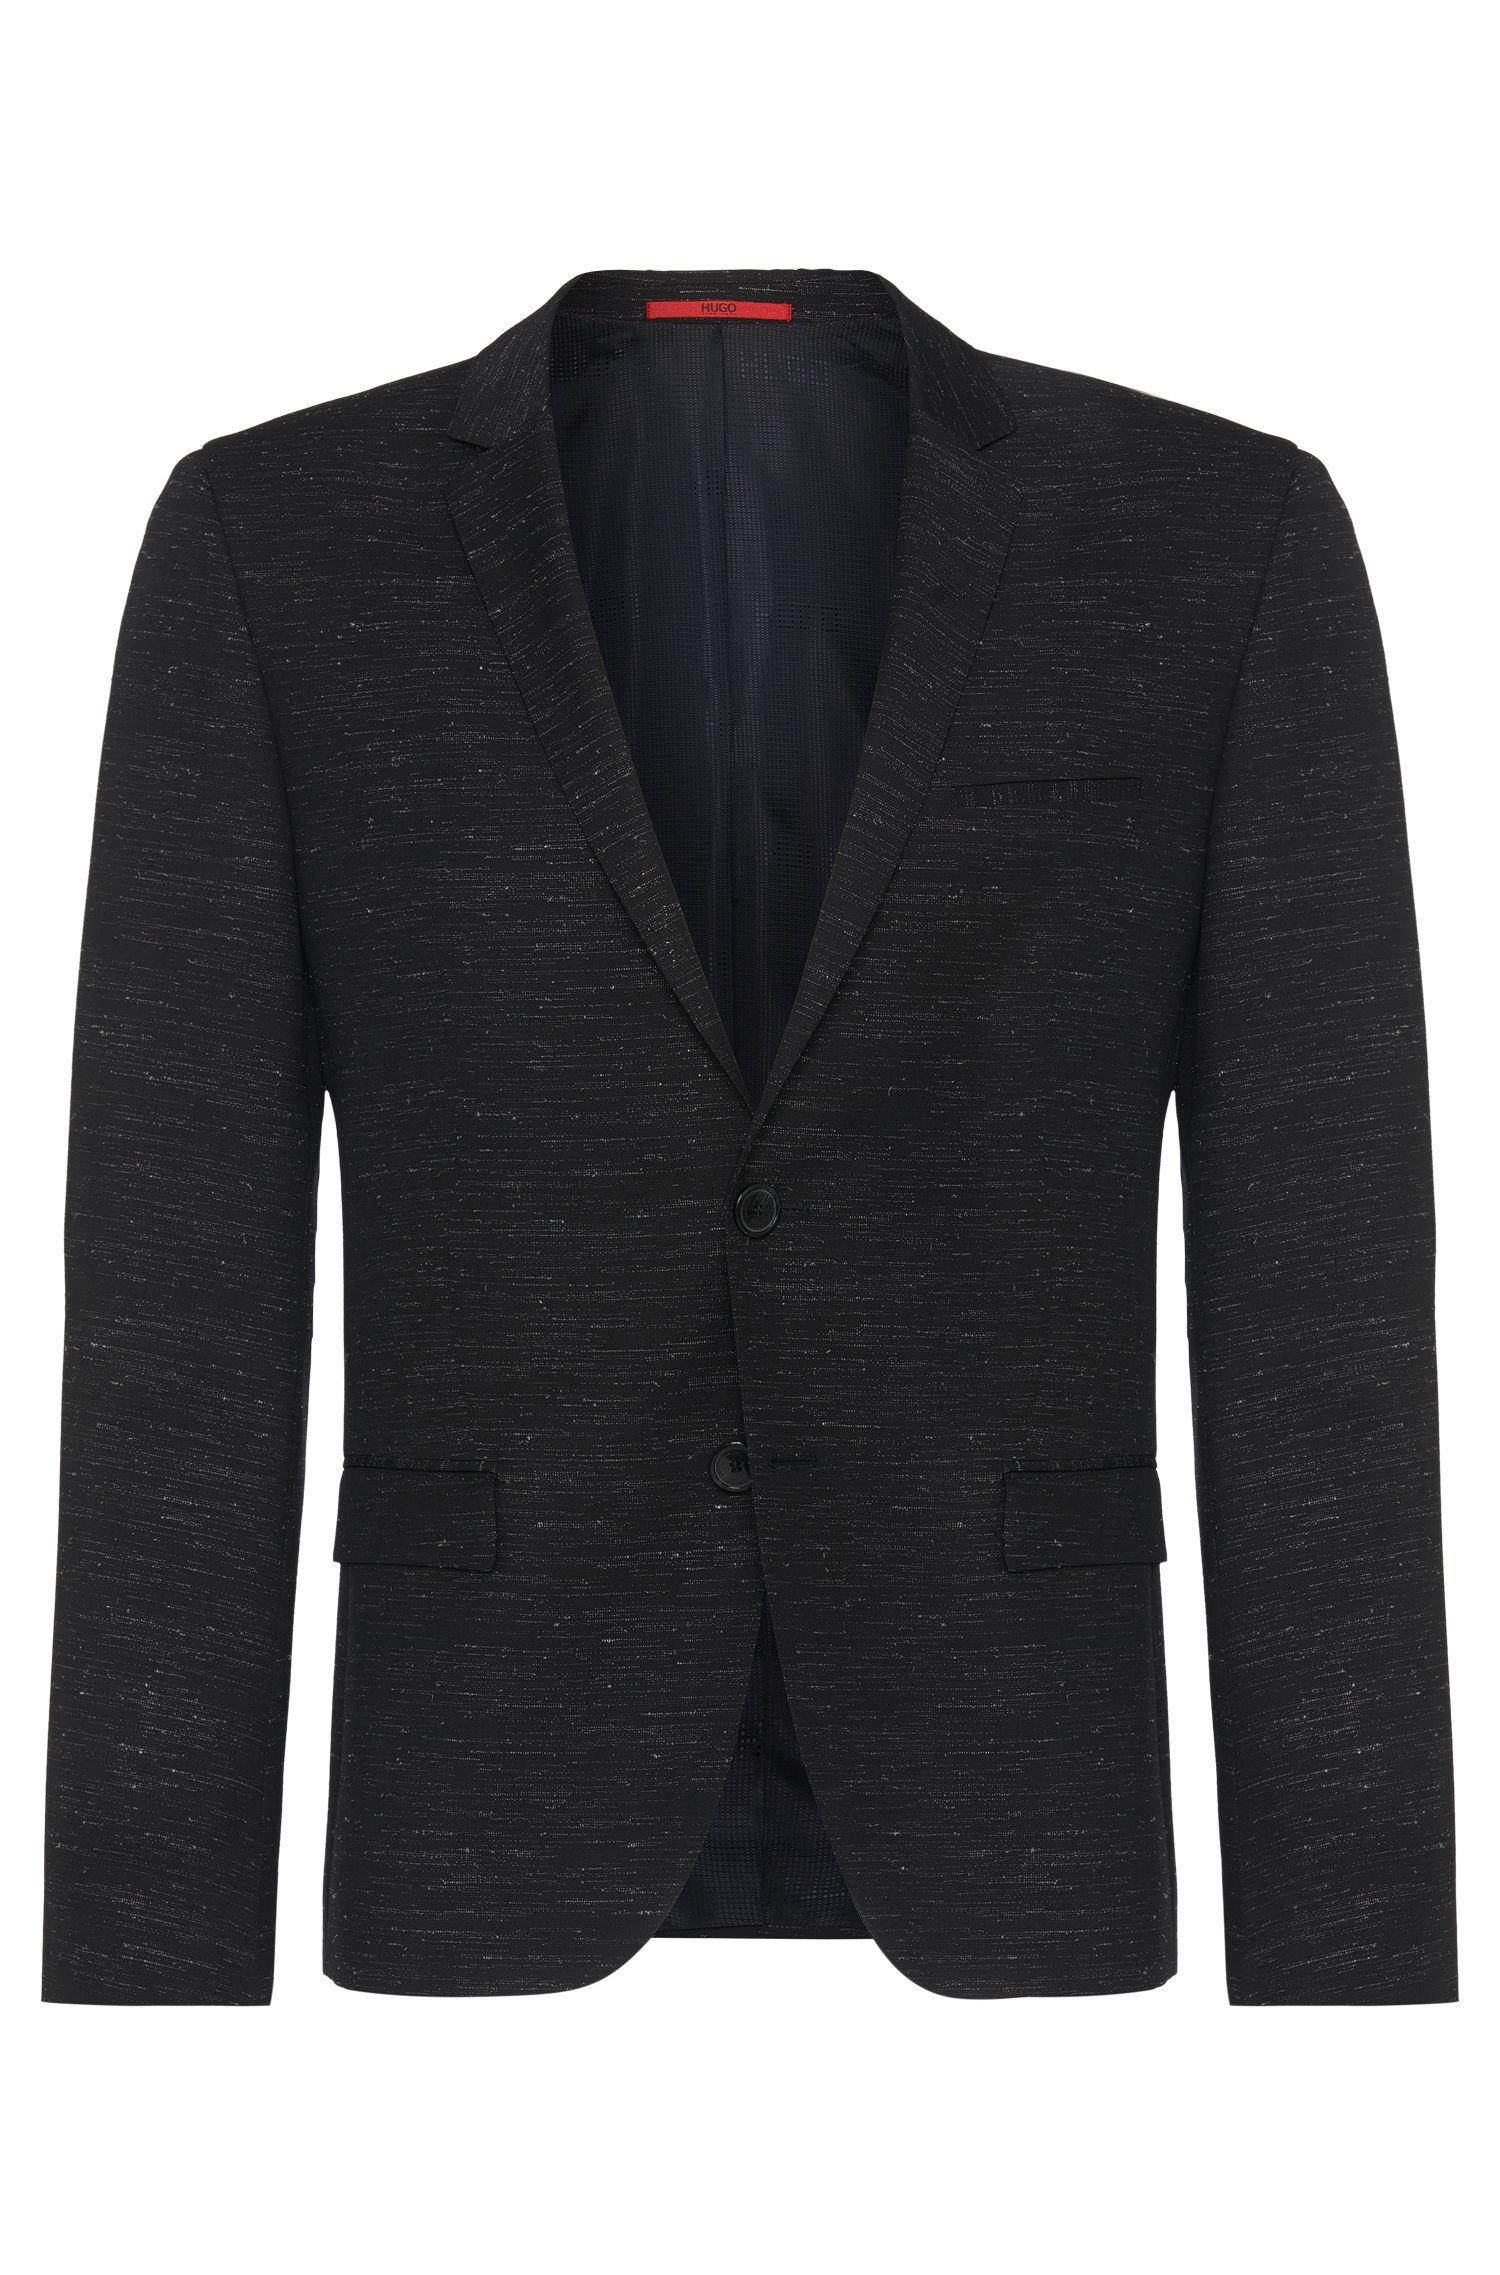 'Arti' | Slim Fit, Virgin Wool Sport Coat